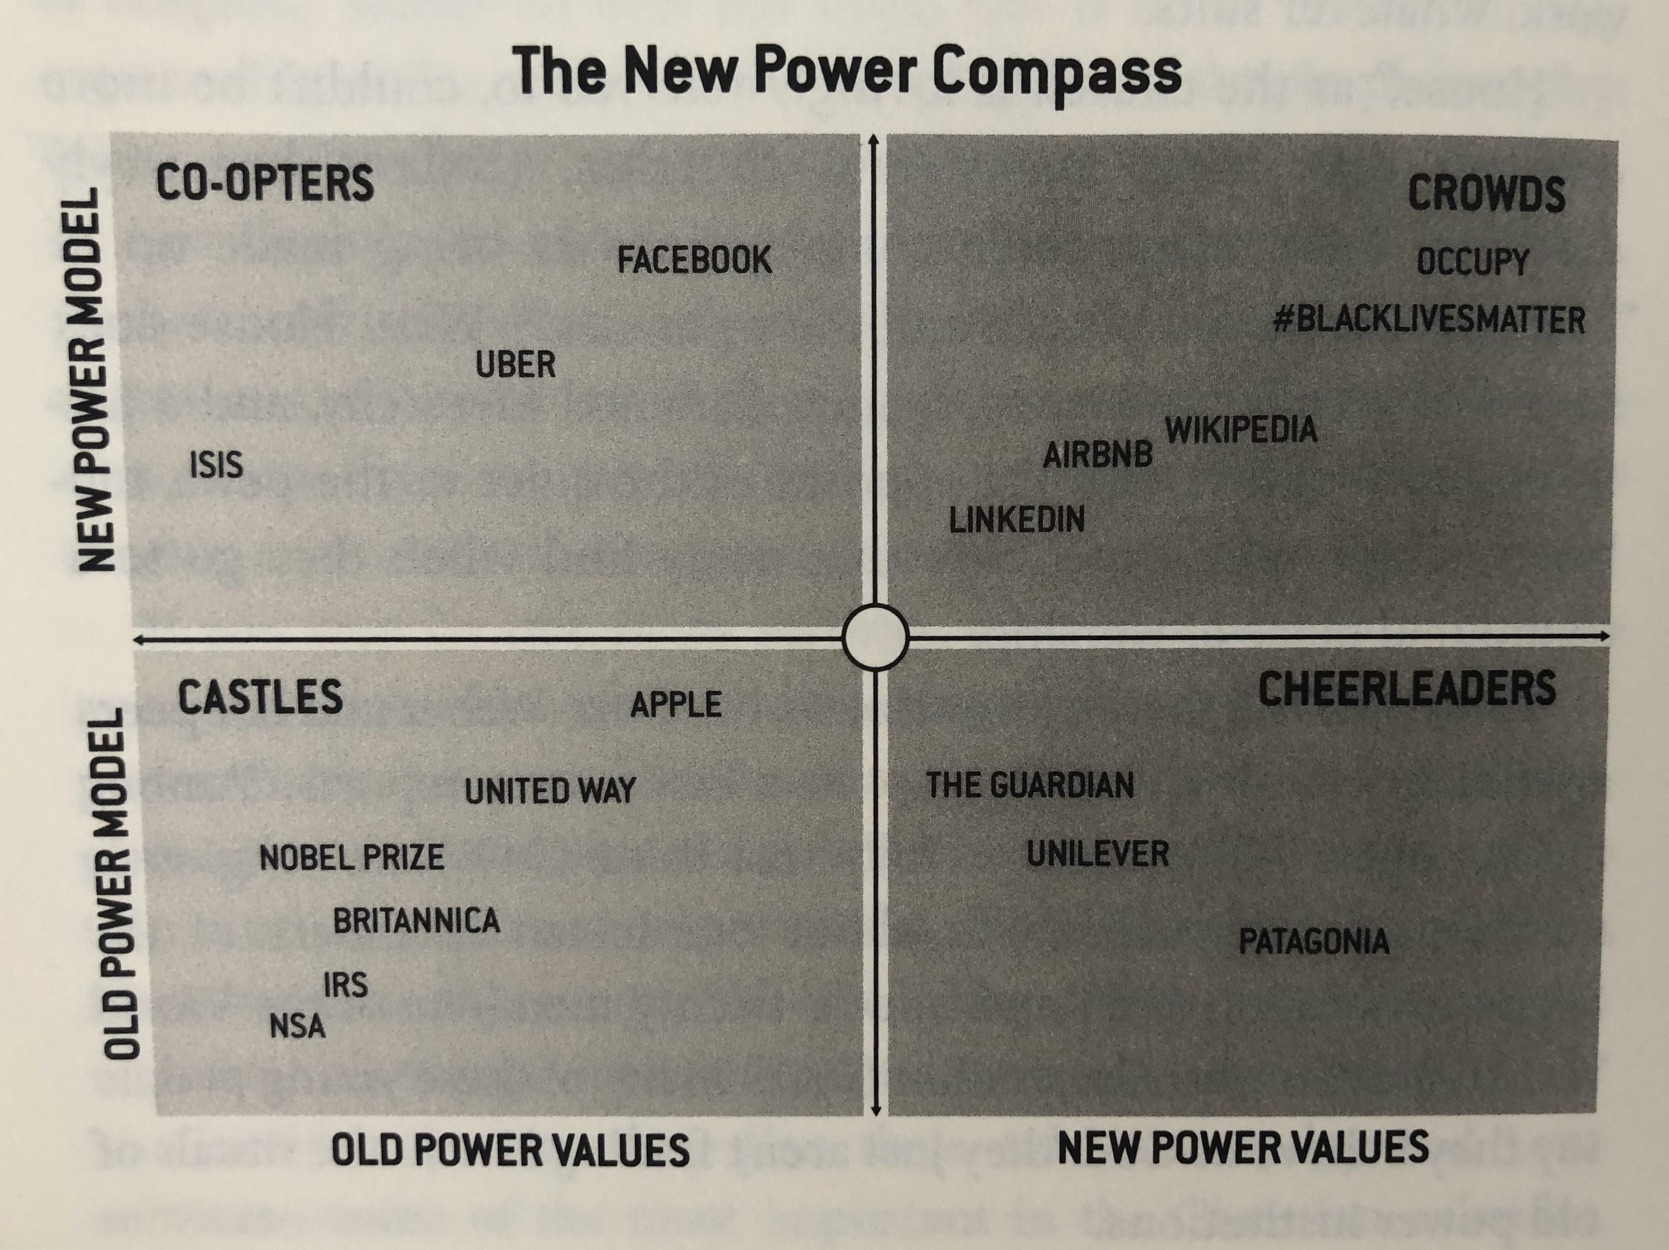 The New Power Compass